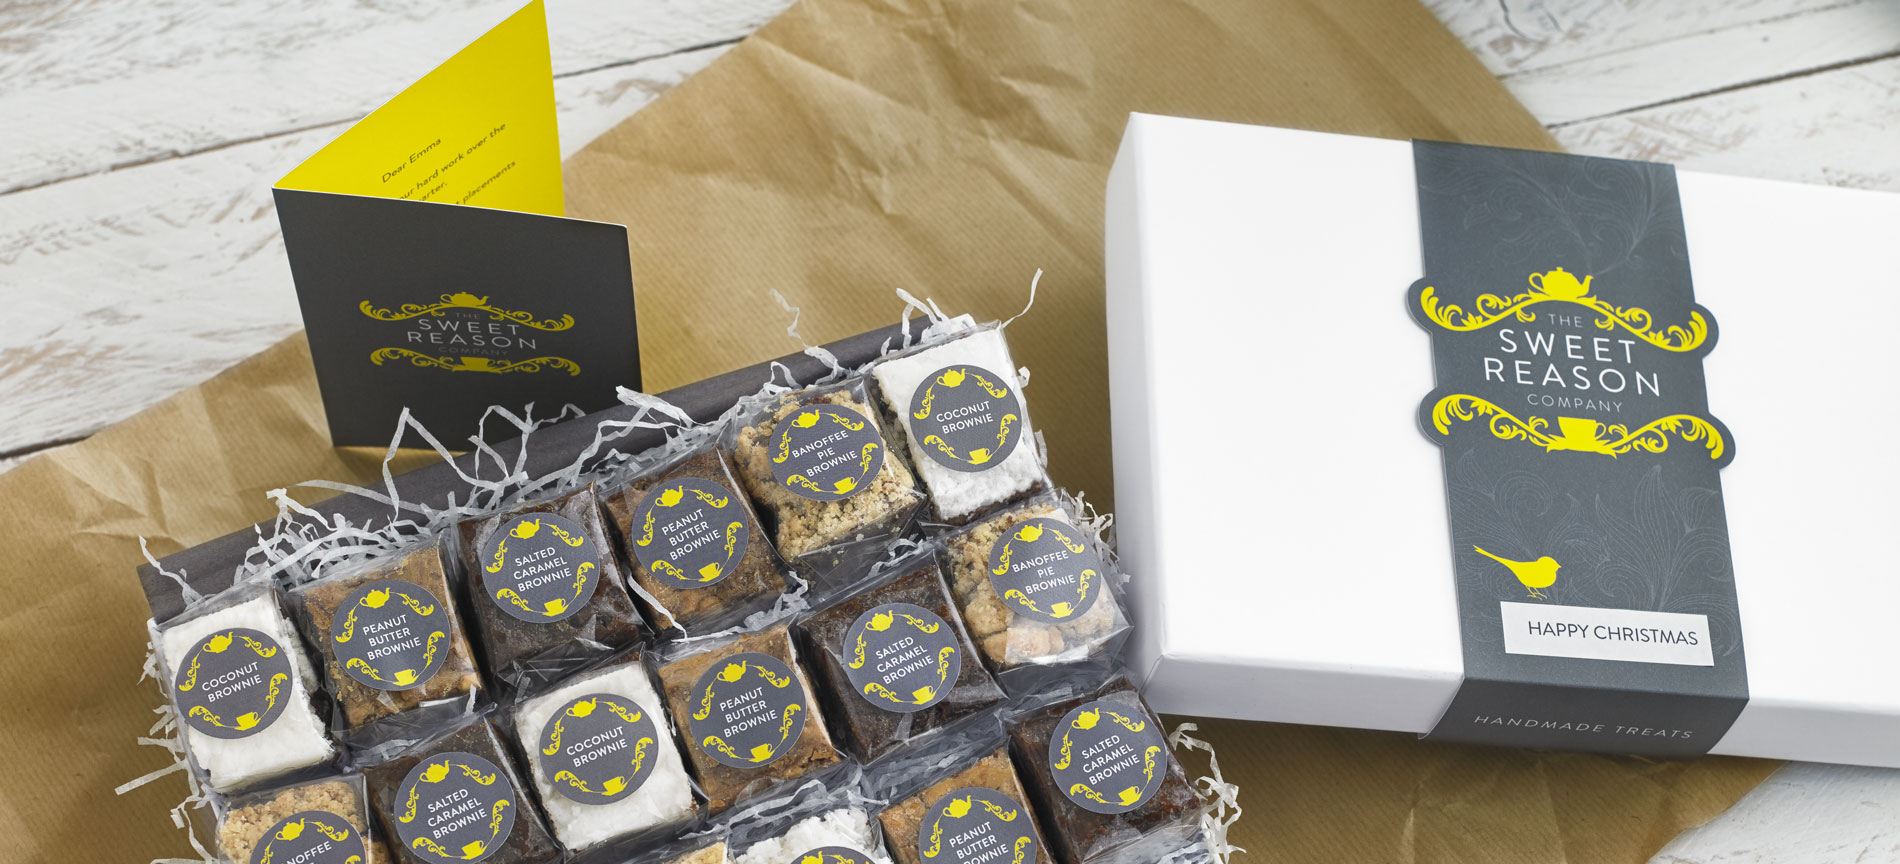 The Sweet Reason Company brownie box, gift card and box band - desktop